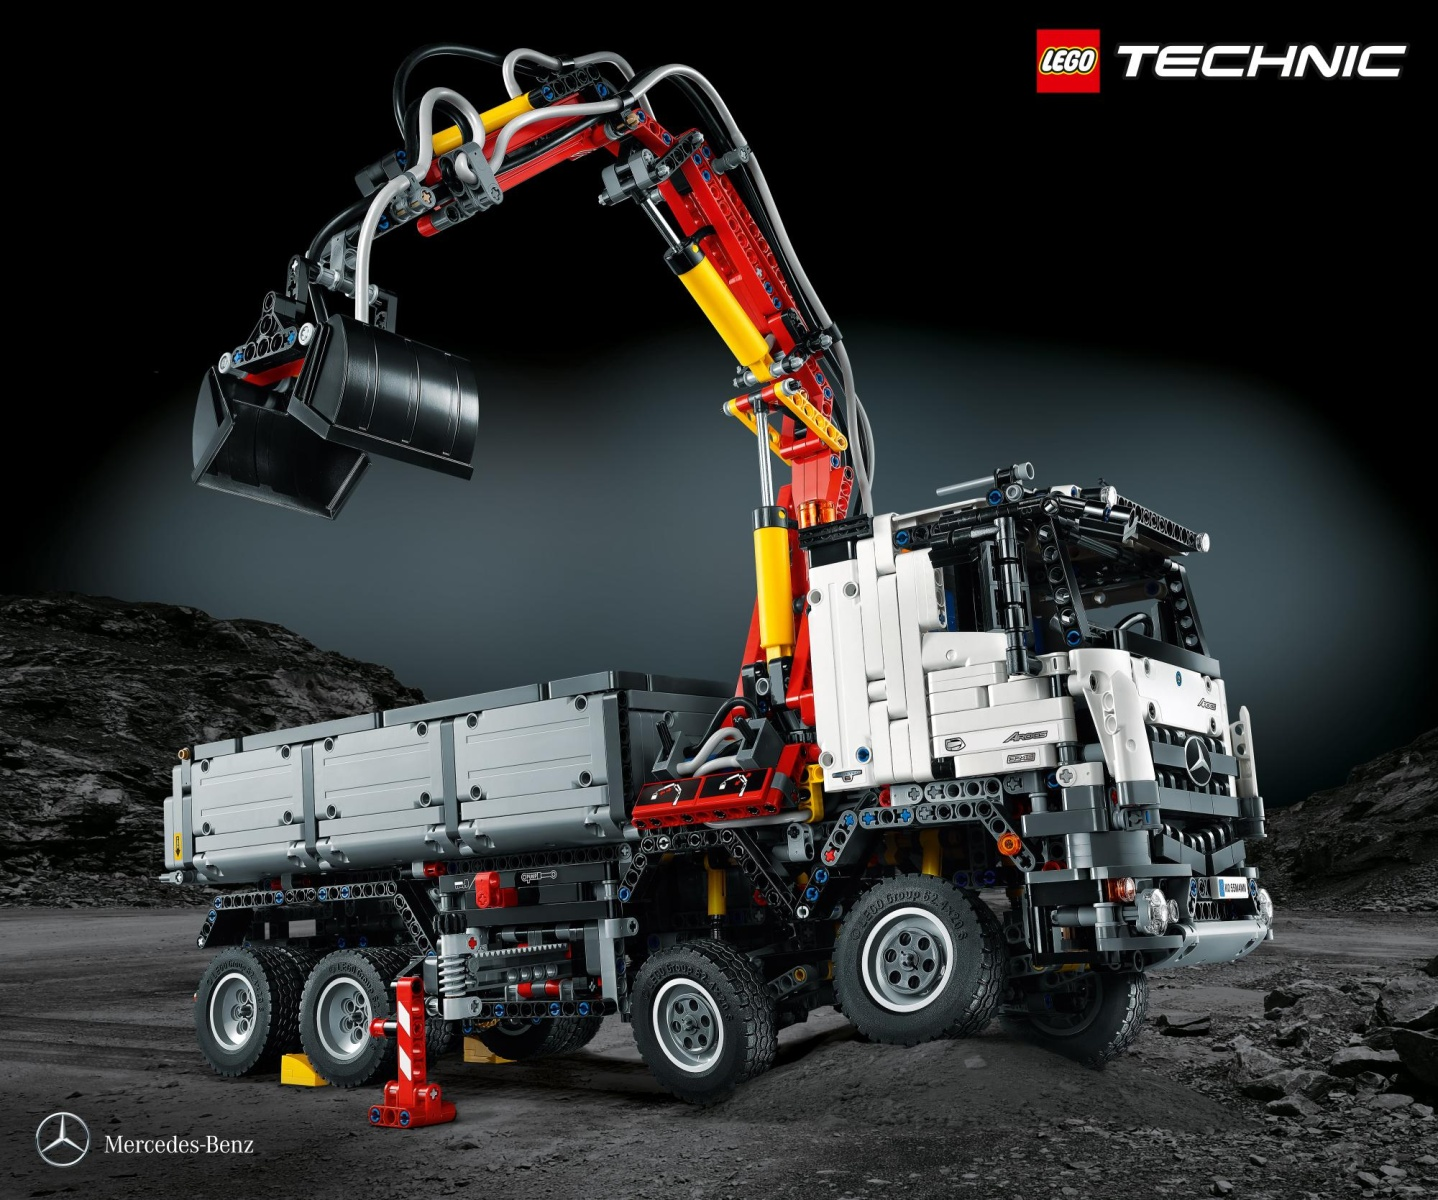 mercedes-benz-arocs-3245-launched-it-s-a-lego-technic-truck-made-of-almost-3000-pieces_1